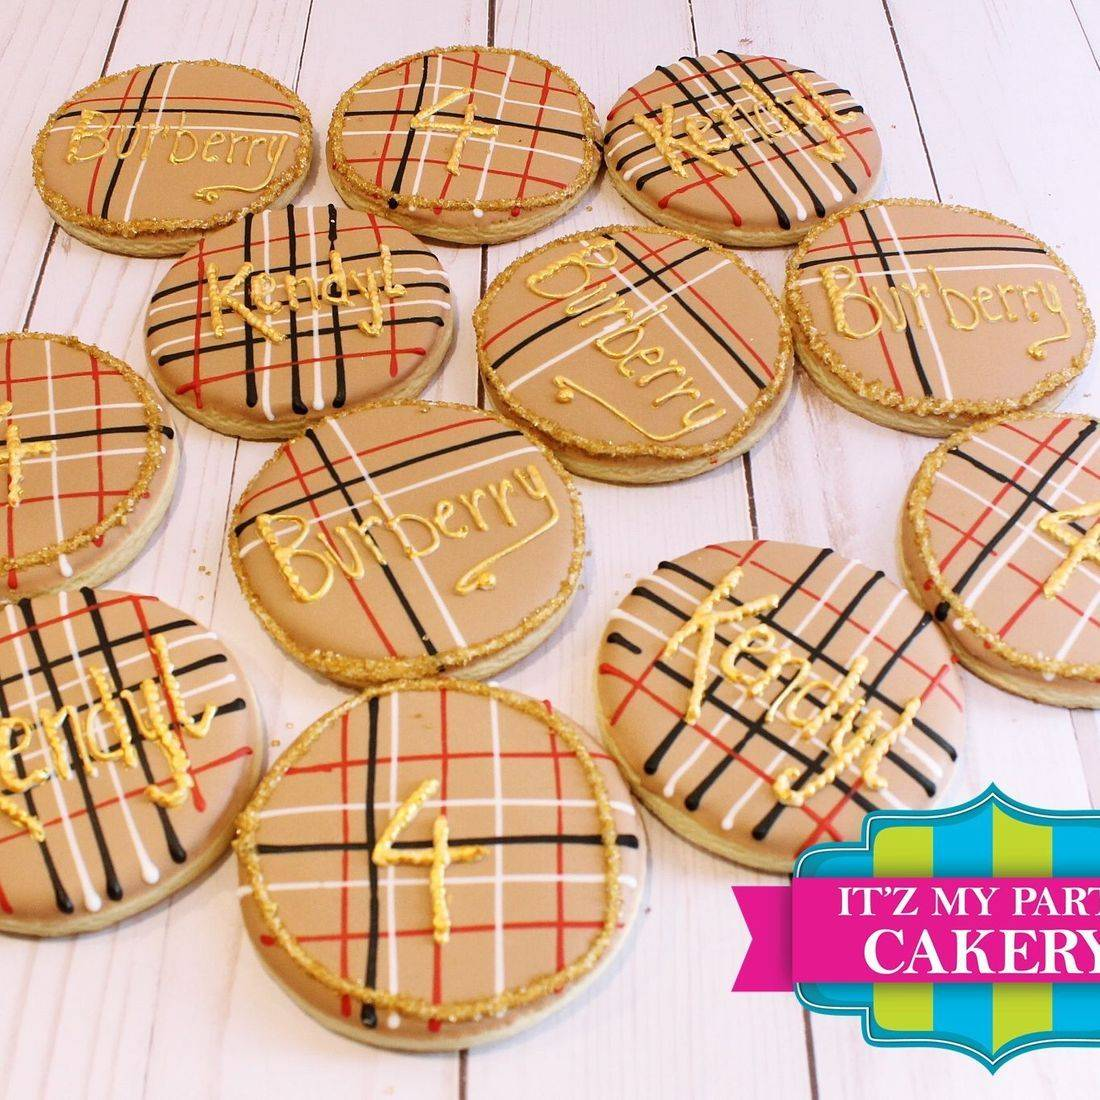 Burberry Inspired Cookies Milwaukee